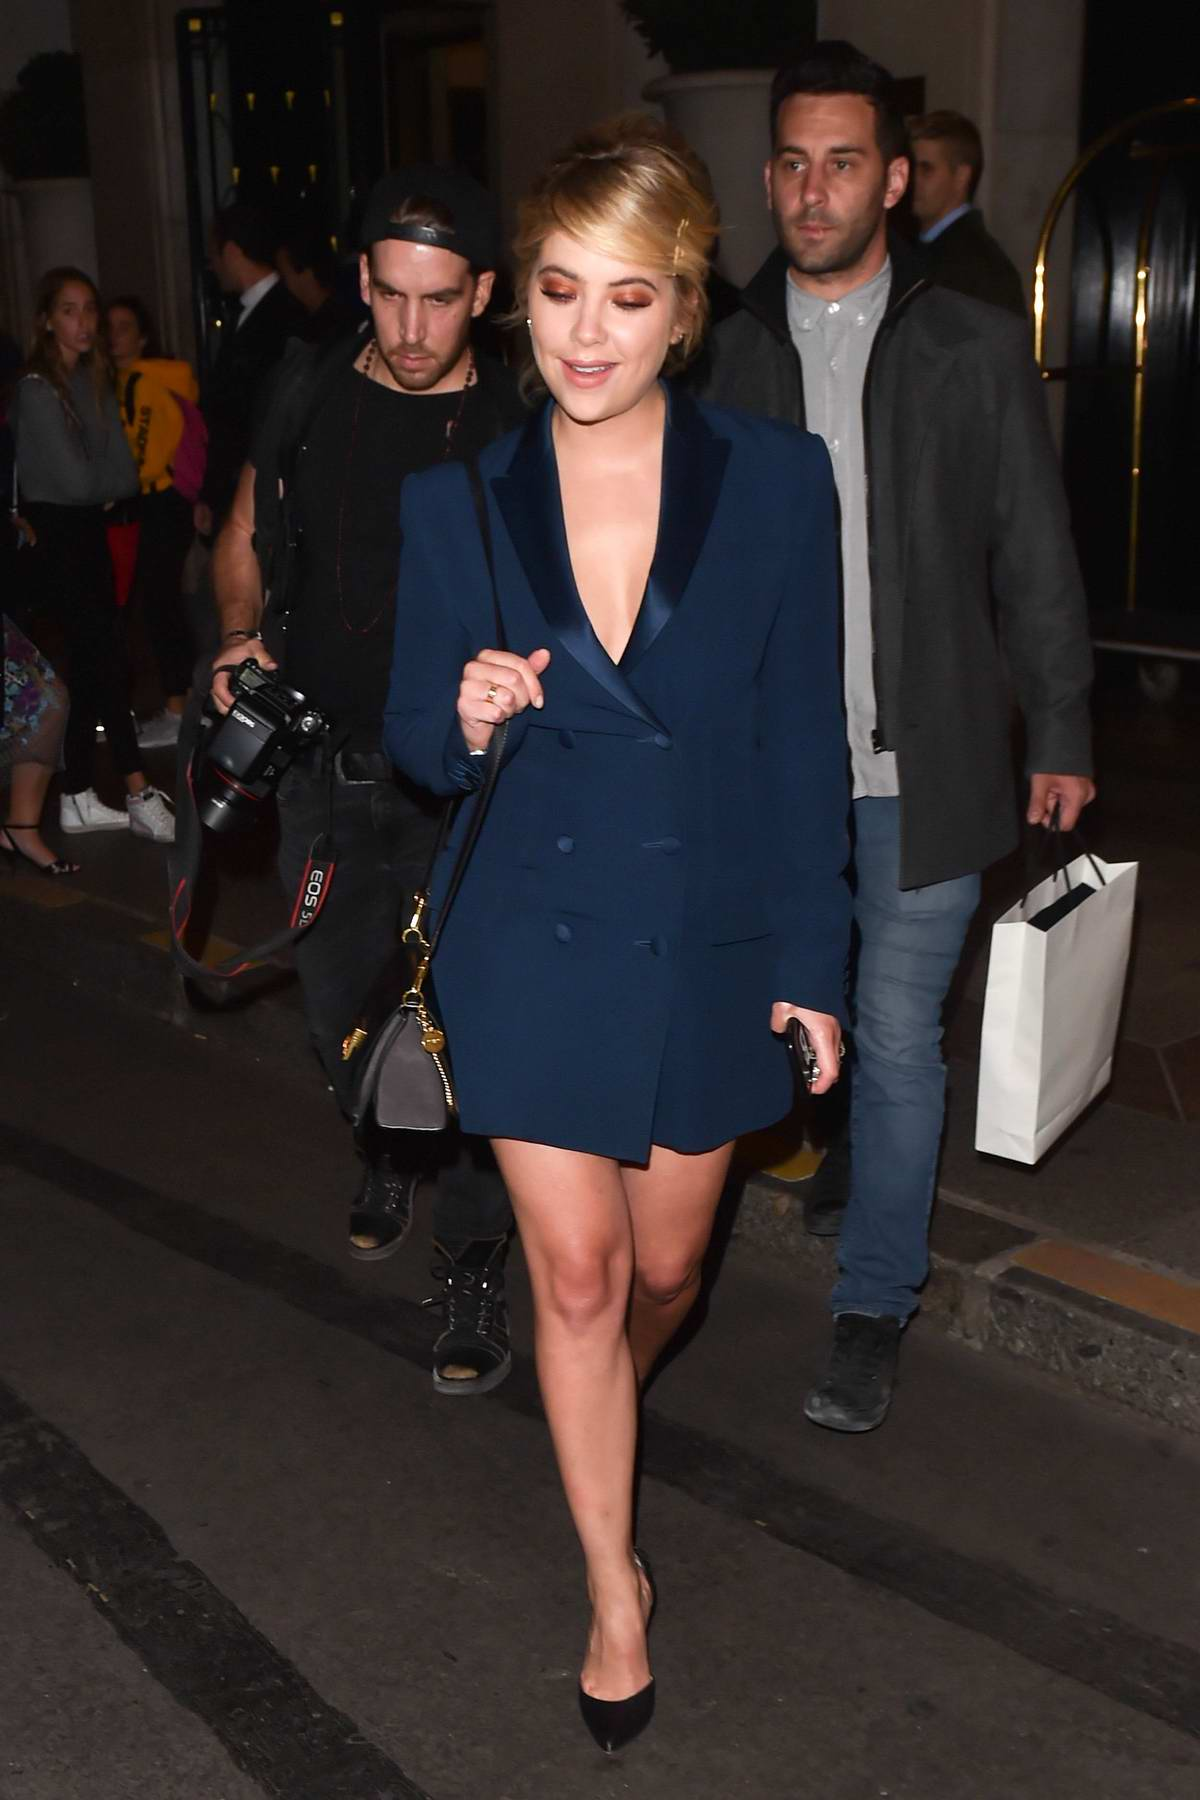 Ashley Benson is seen leaving Palace Hotel in Paris, France